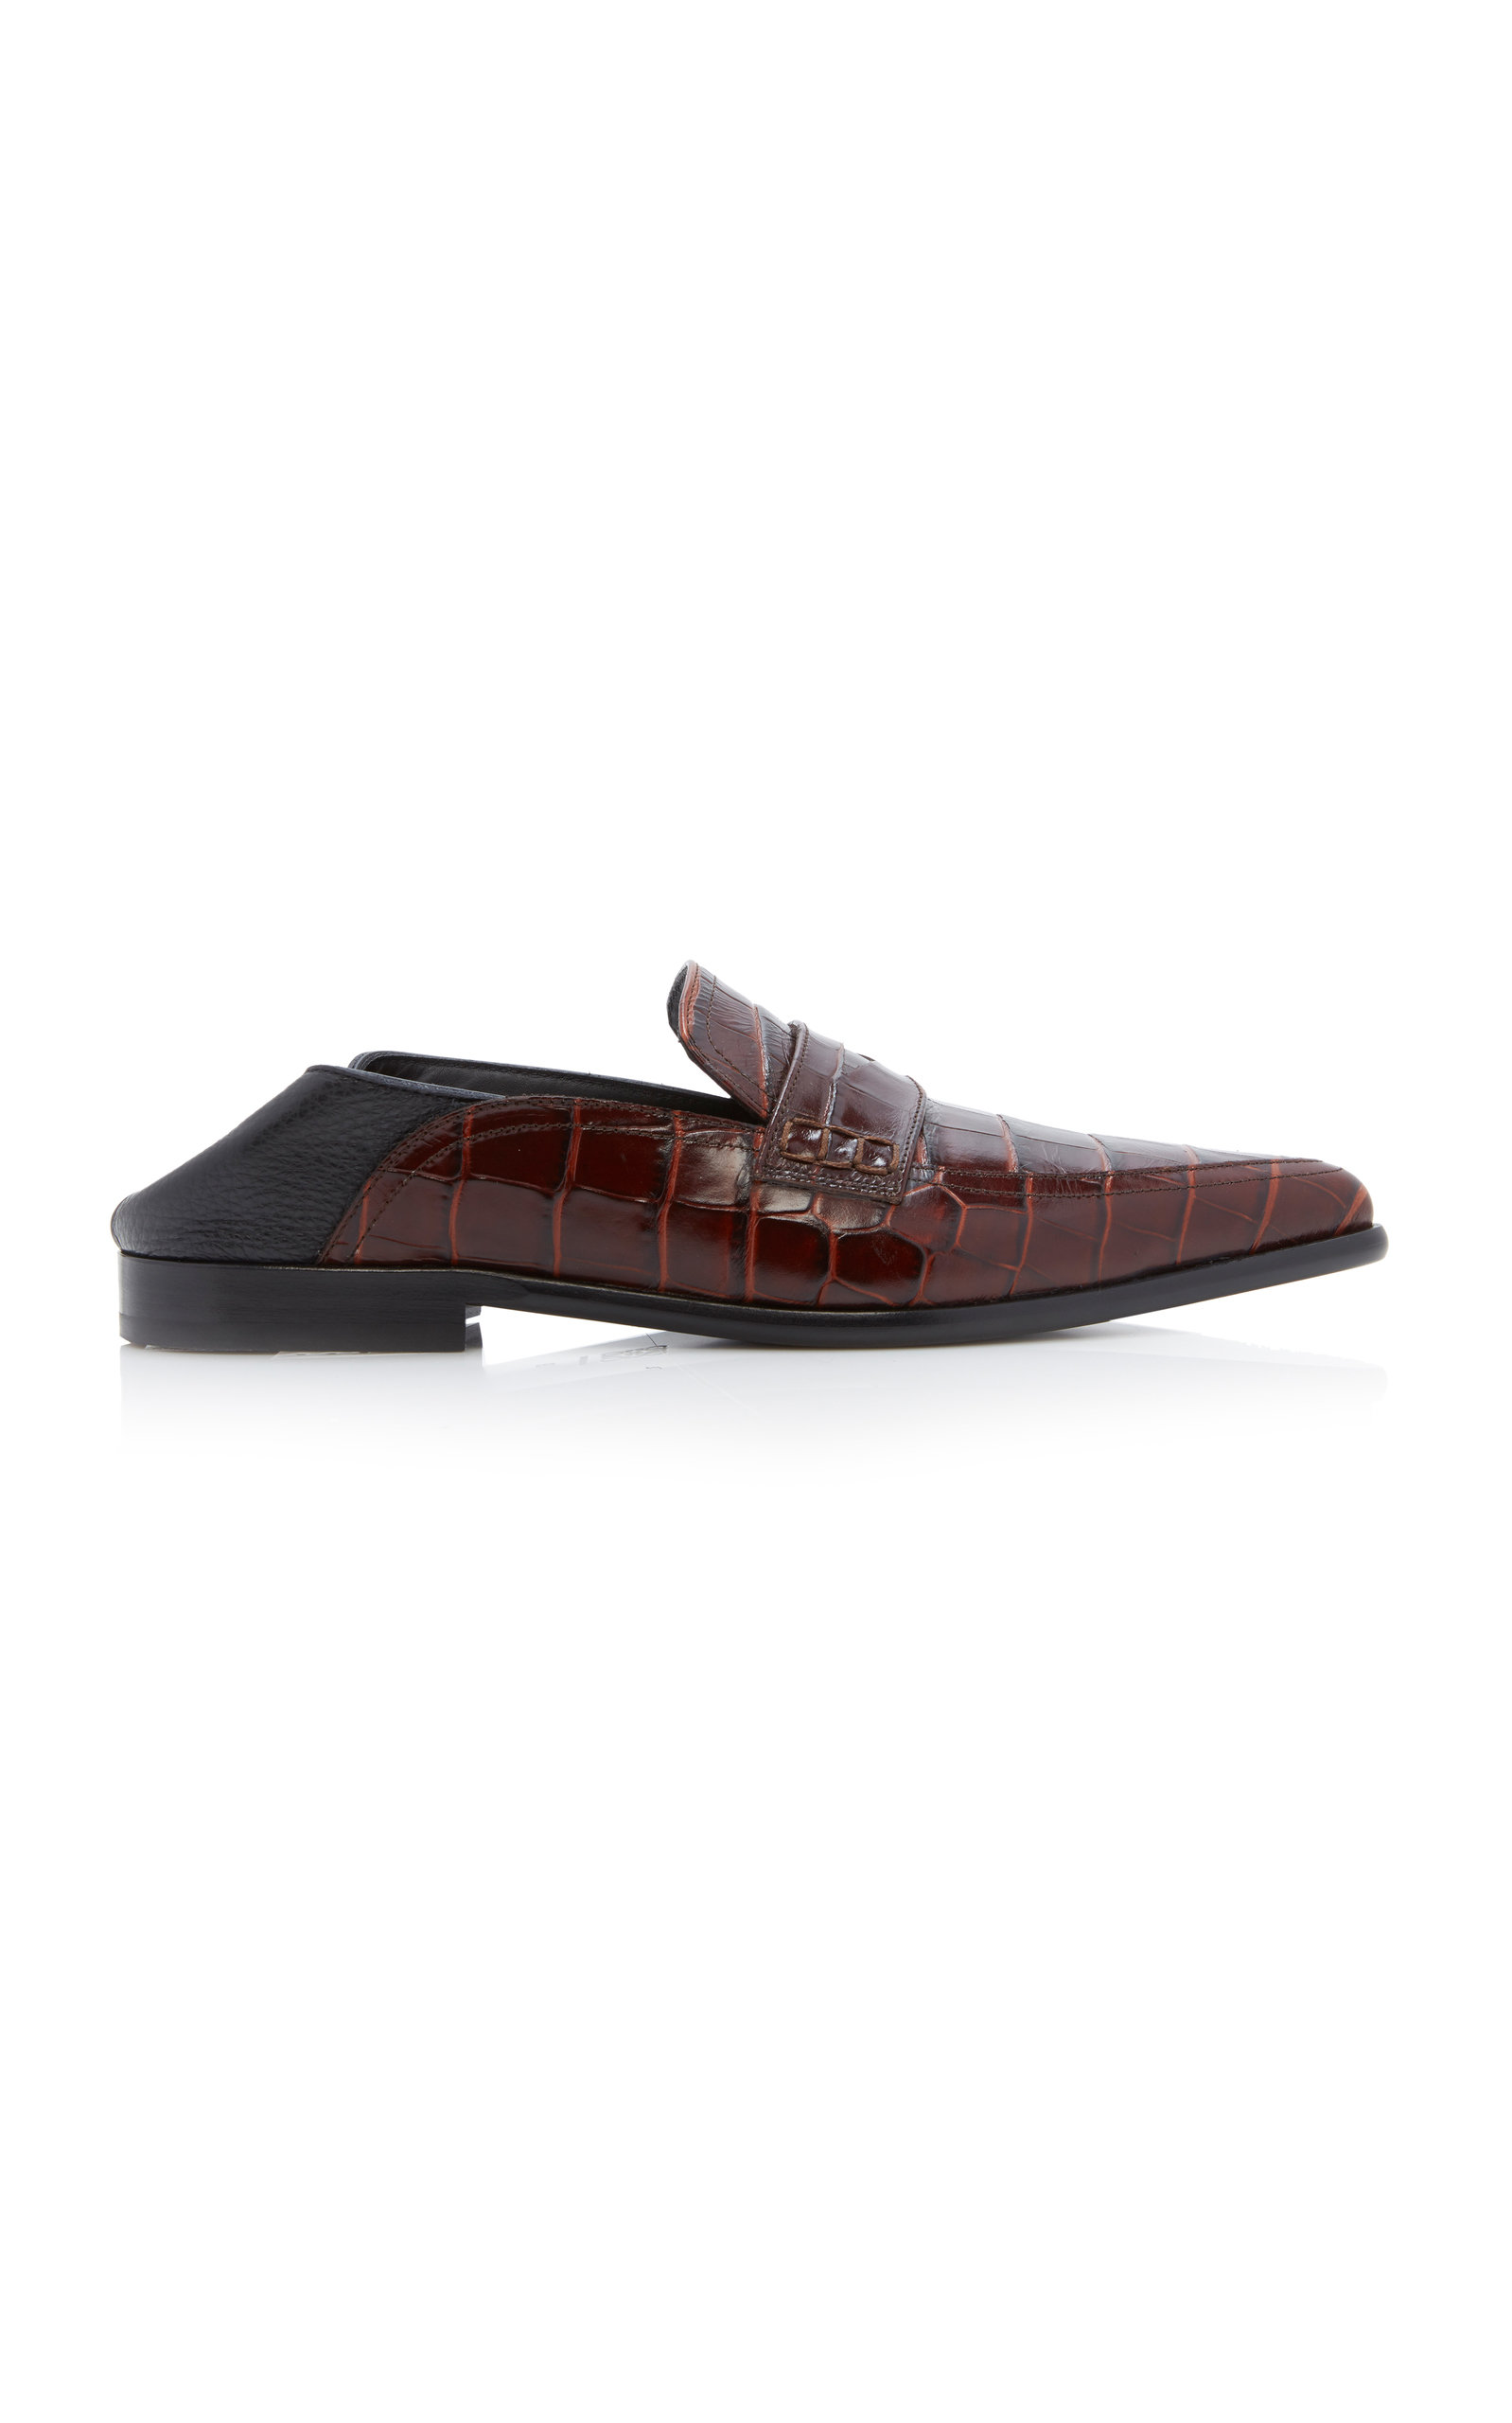 59a5ba98f80 LoeweEmbossed Croc-Effect Leather Loafers. CLOSE. Loading